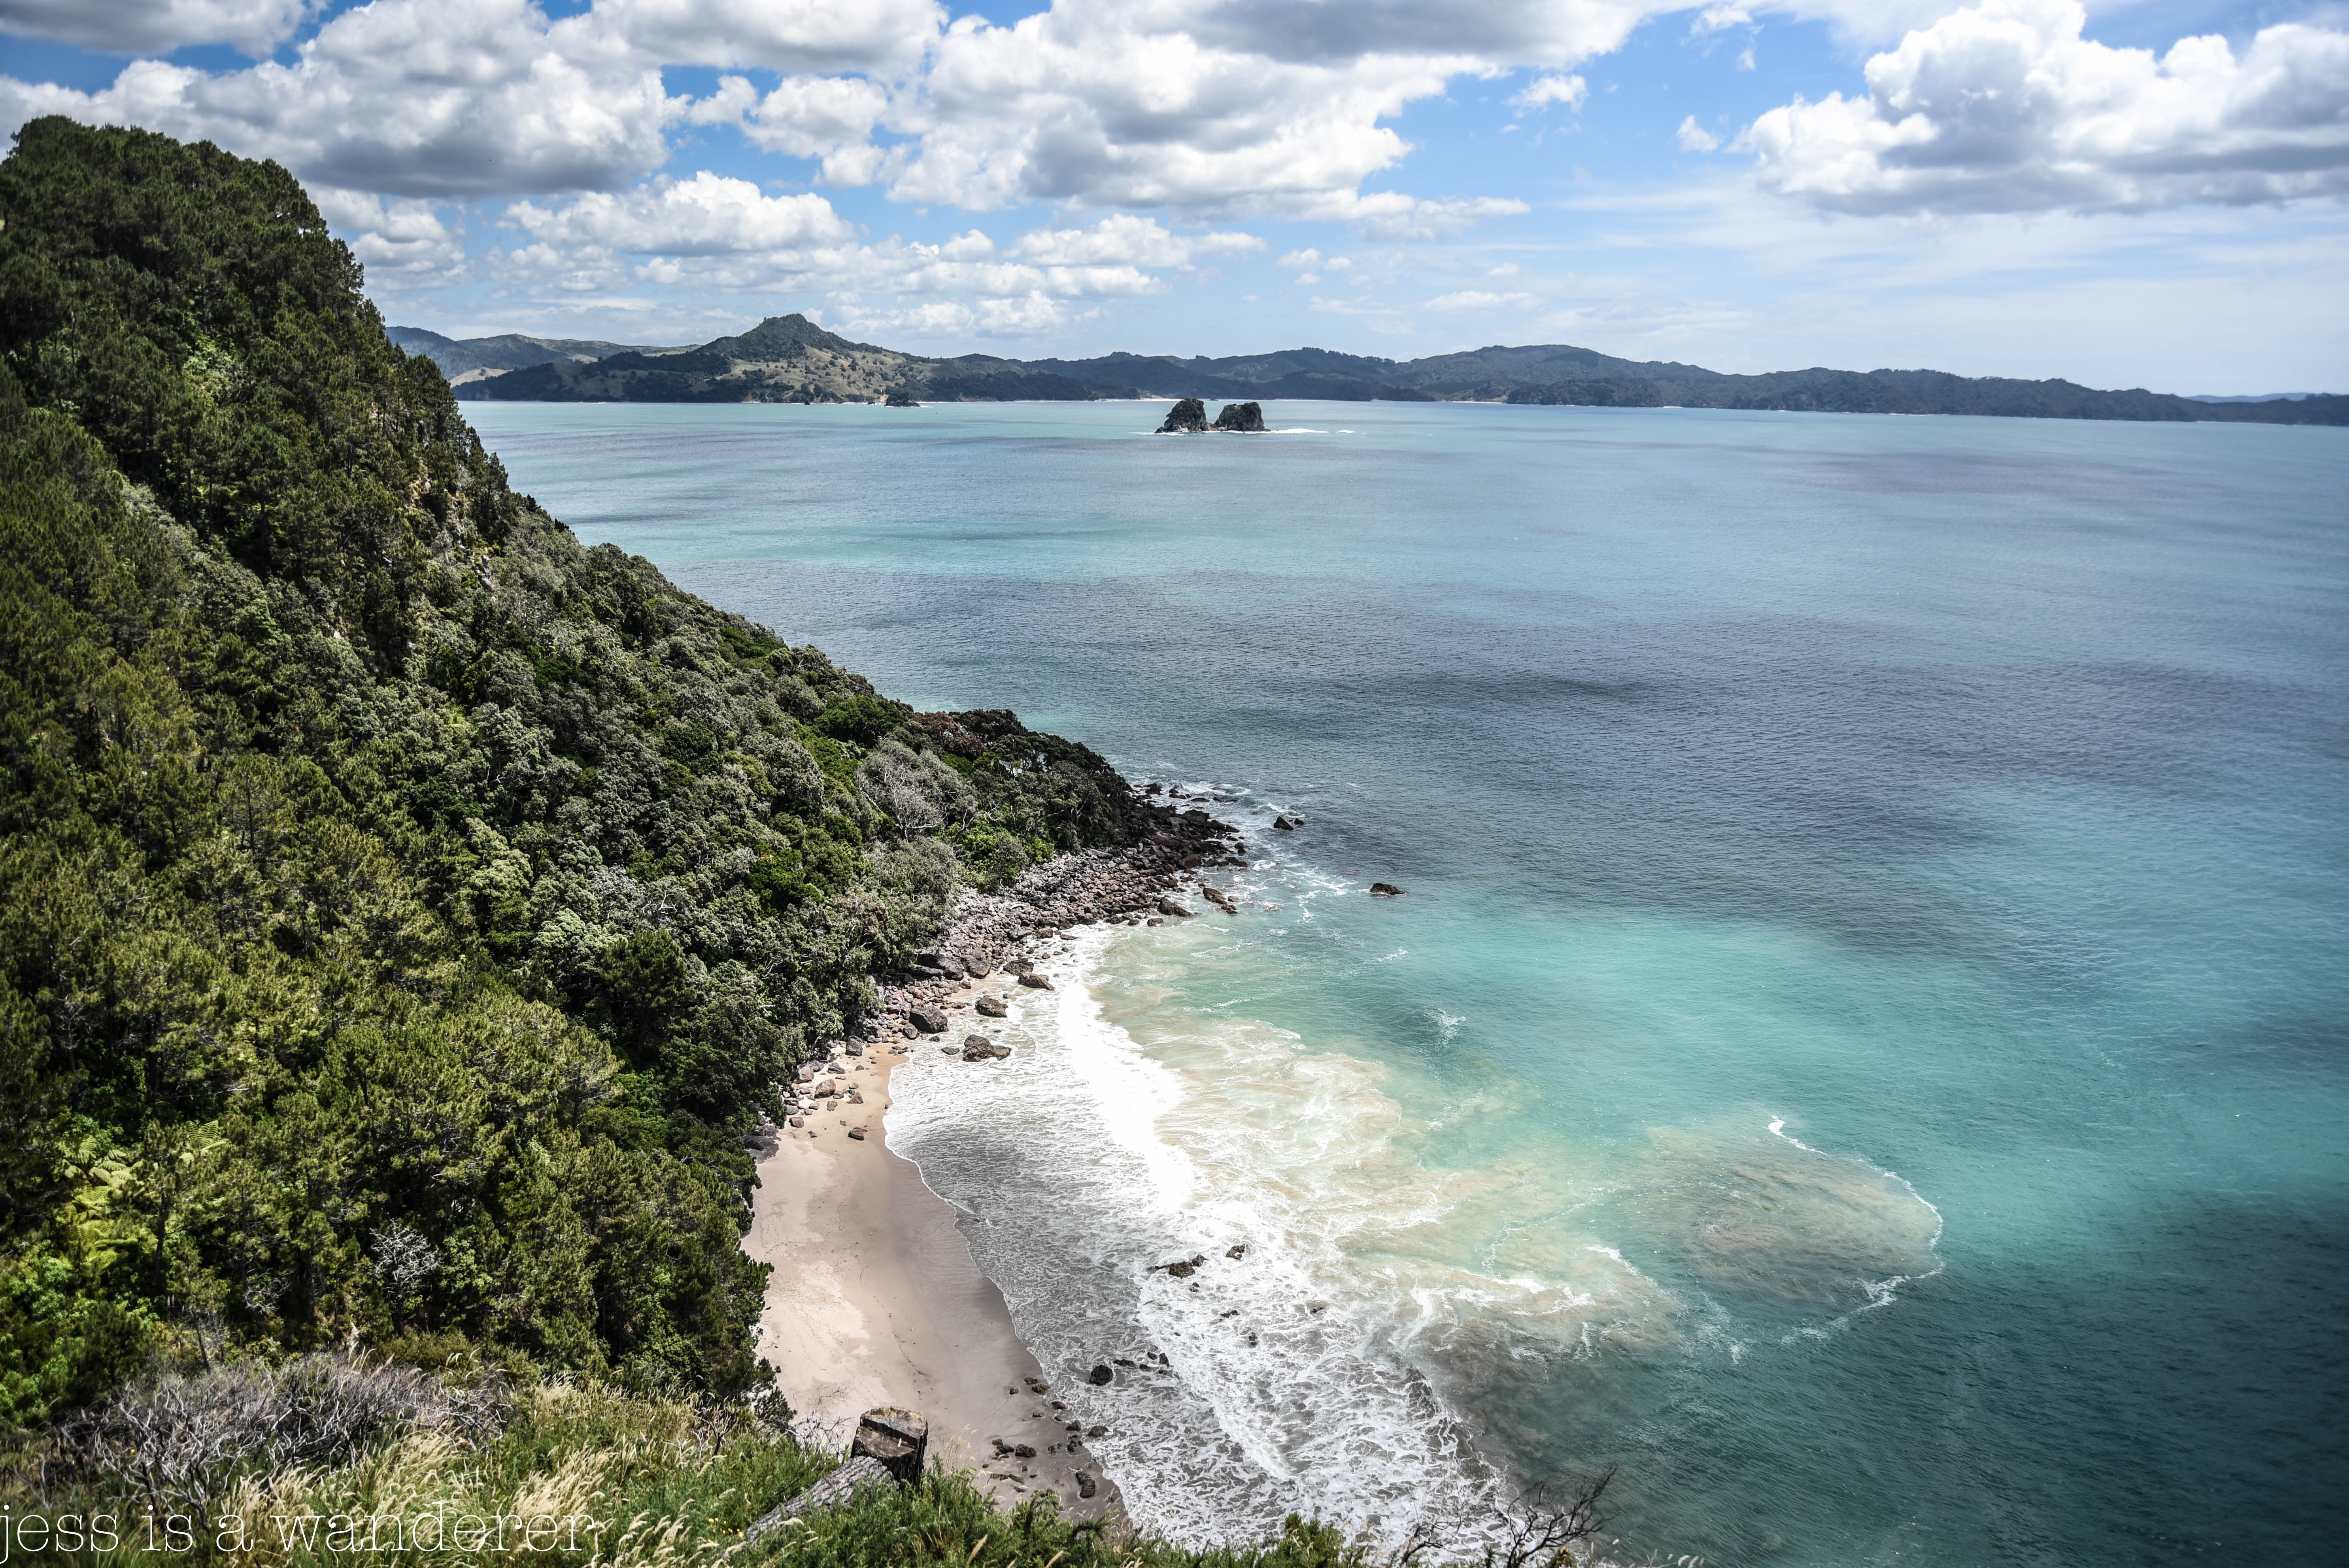 From Cathedral Cove Lookout